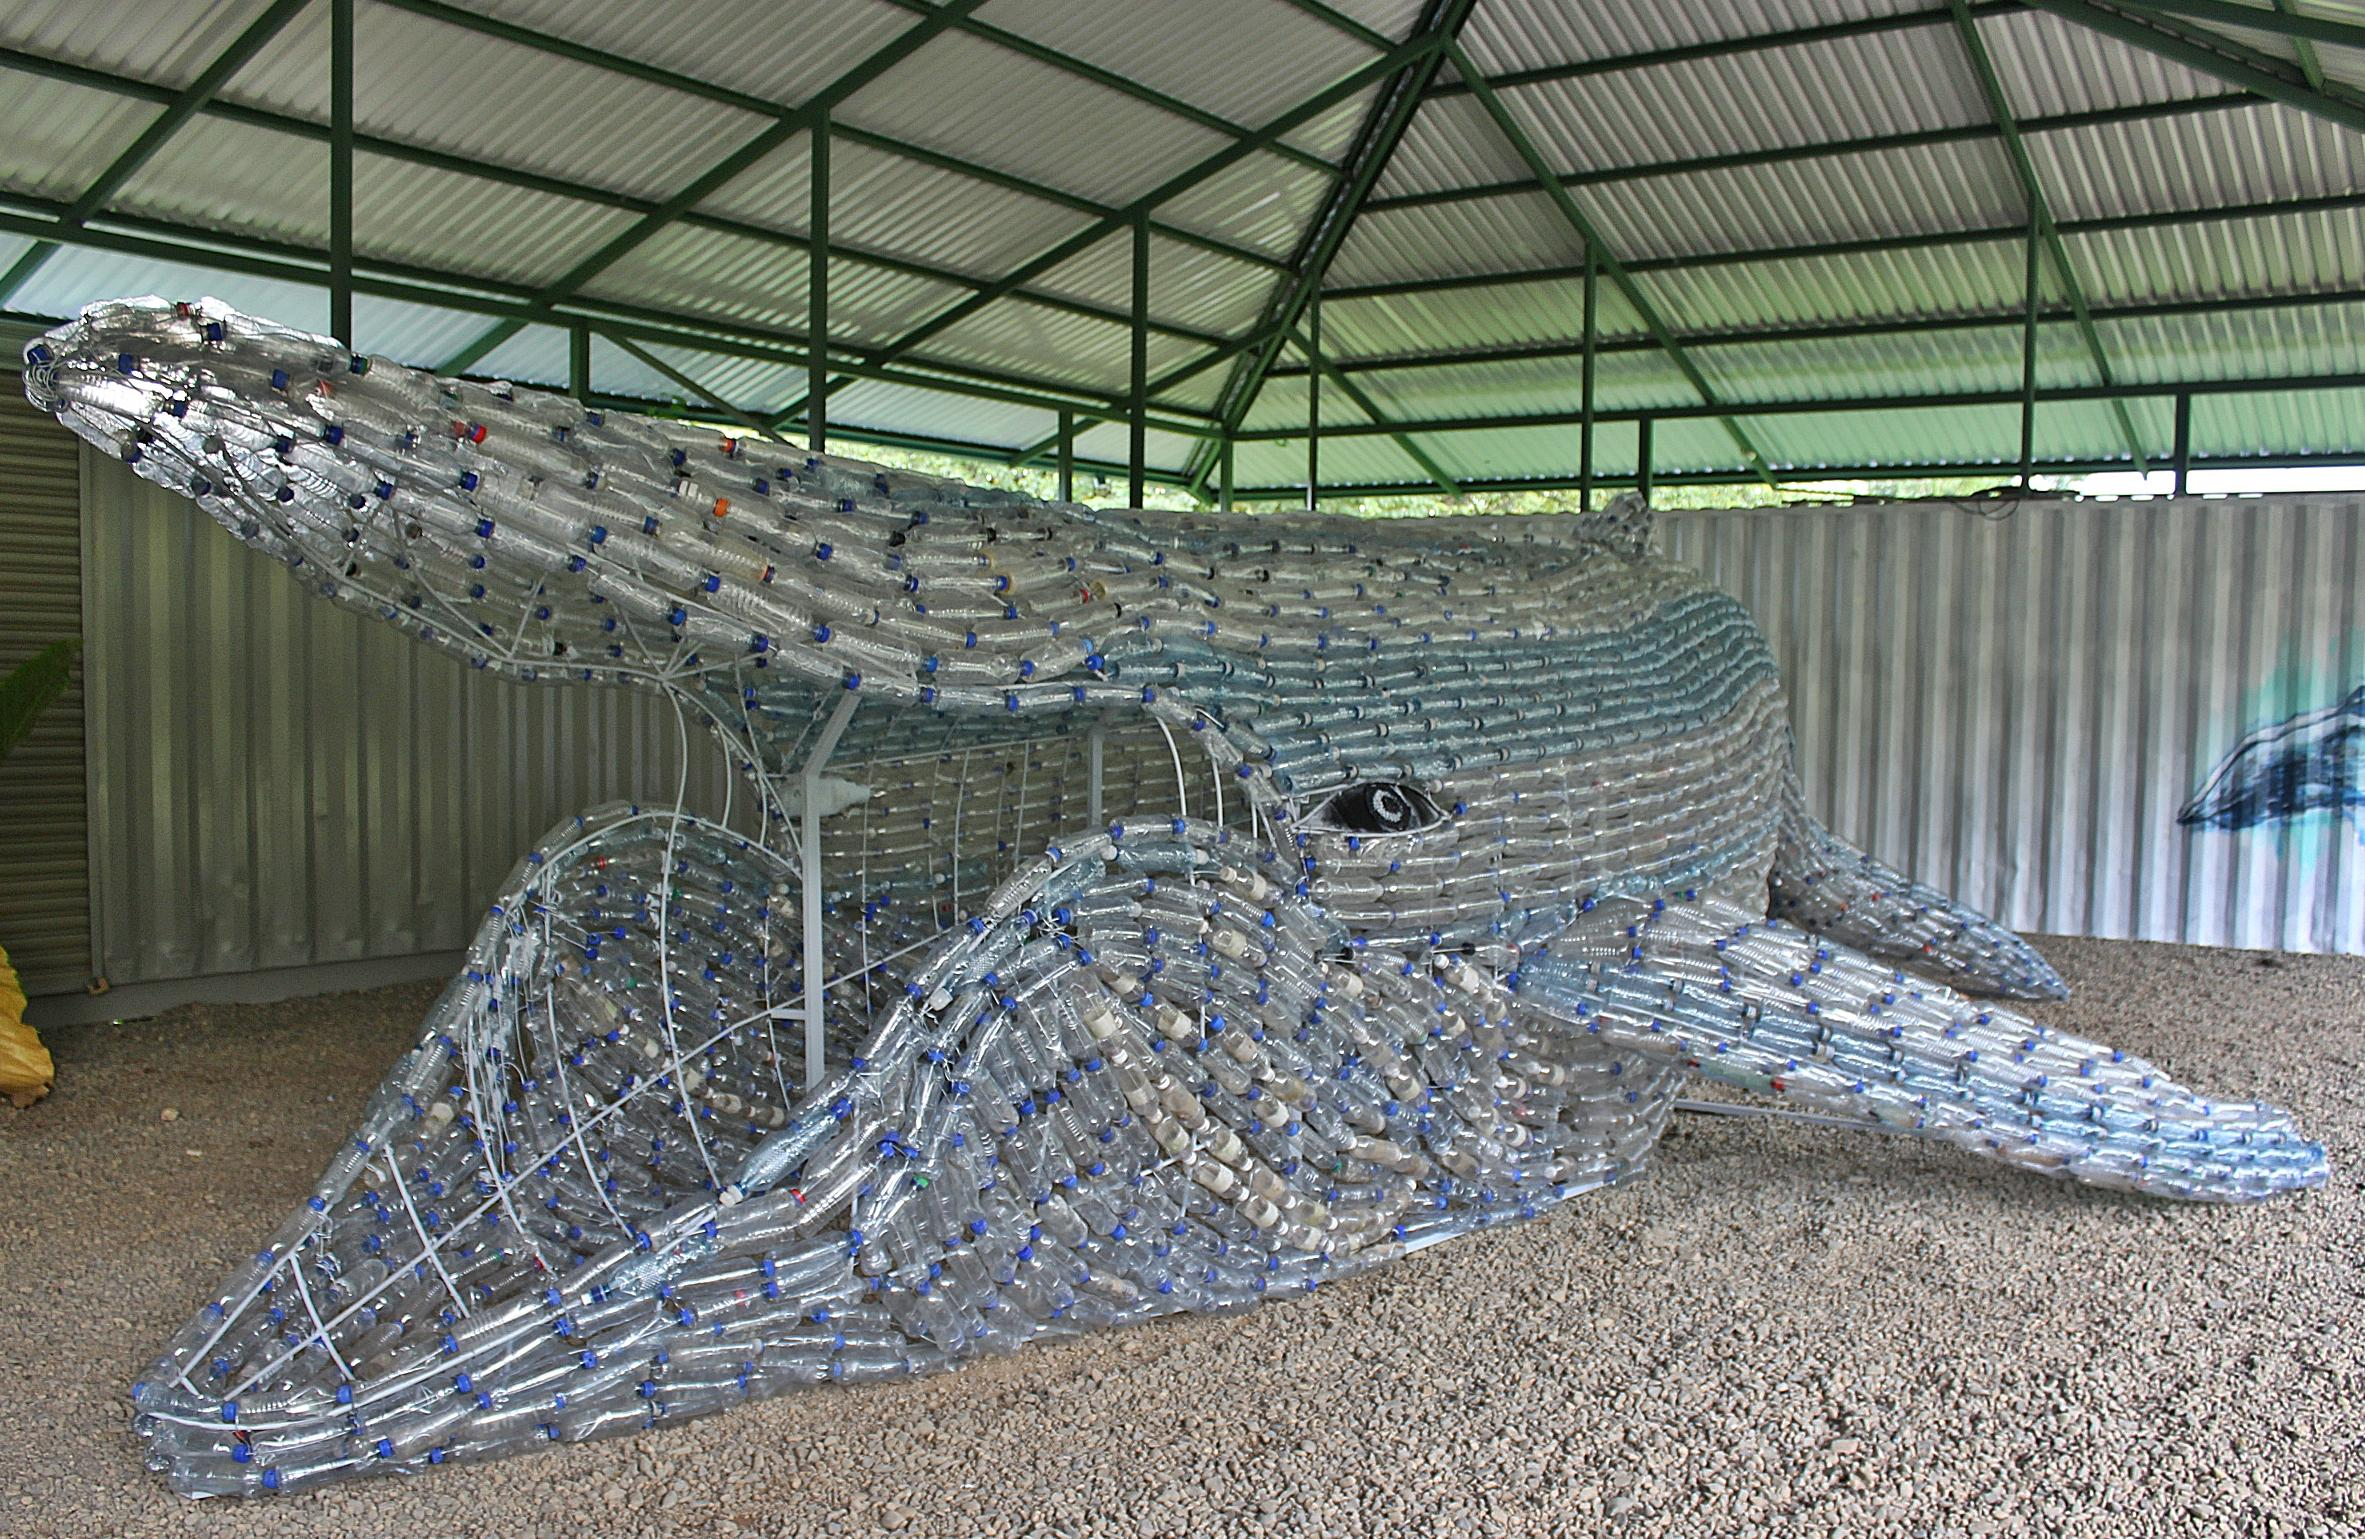 Find the plastic whale in Bahía - Initiative against single-use plastic containers. 5